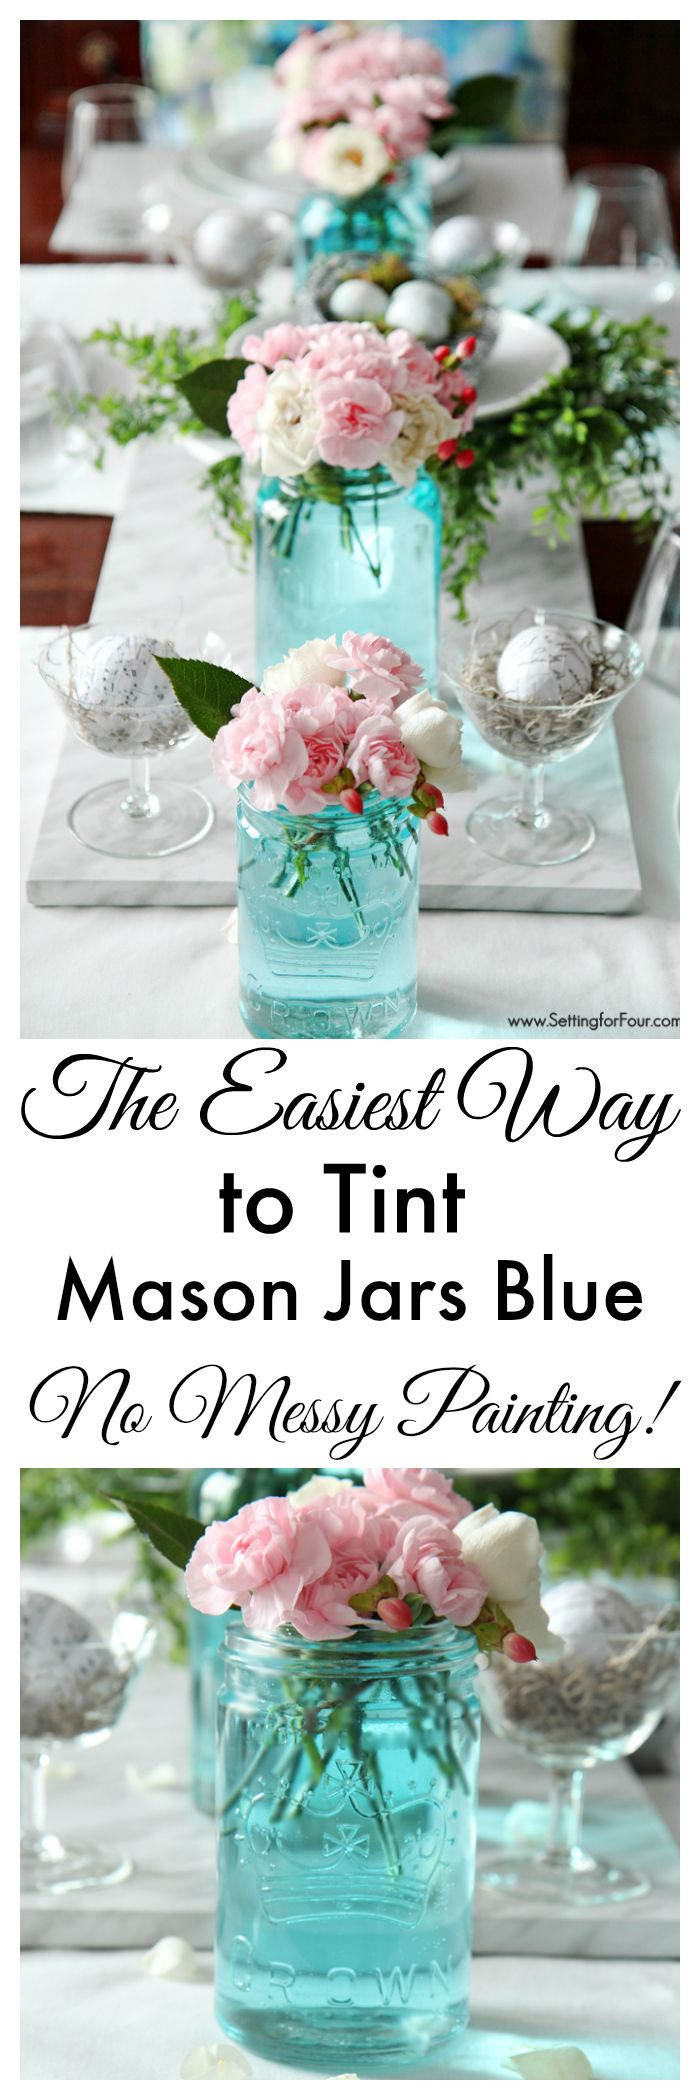 This is completely GENIUS! A slap myself in the forehead so easy way to tint mason jars blue! You won't believe how SIMPLE and INSTANT it is to get that perfect vintage blue mason jar color without any messy painting! And you can customize the color for your decor! www.settingforfour.com